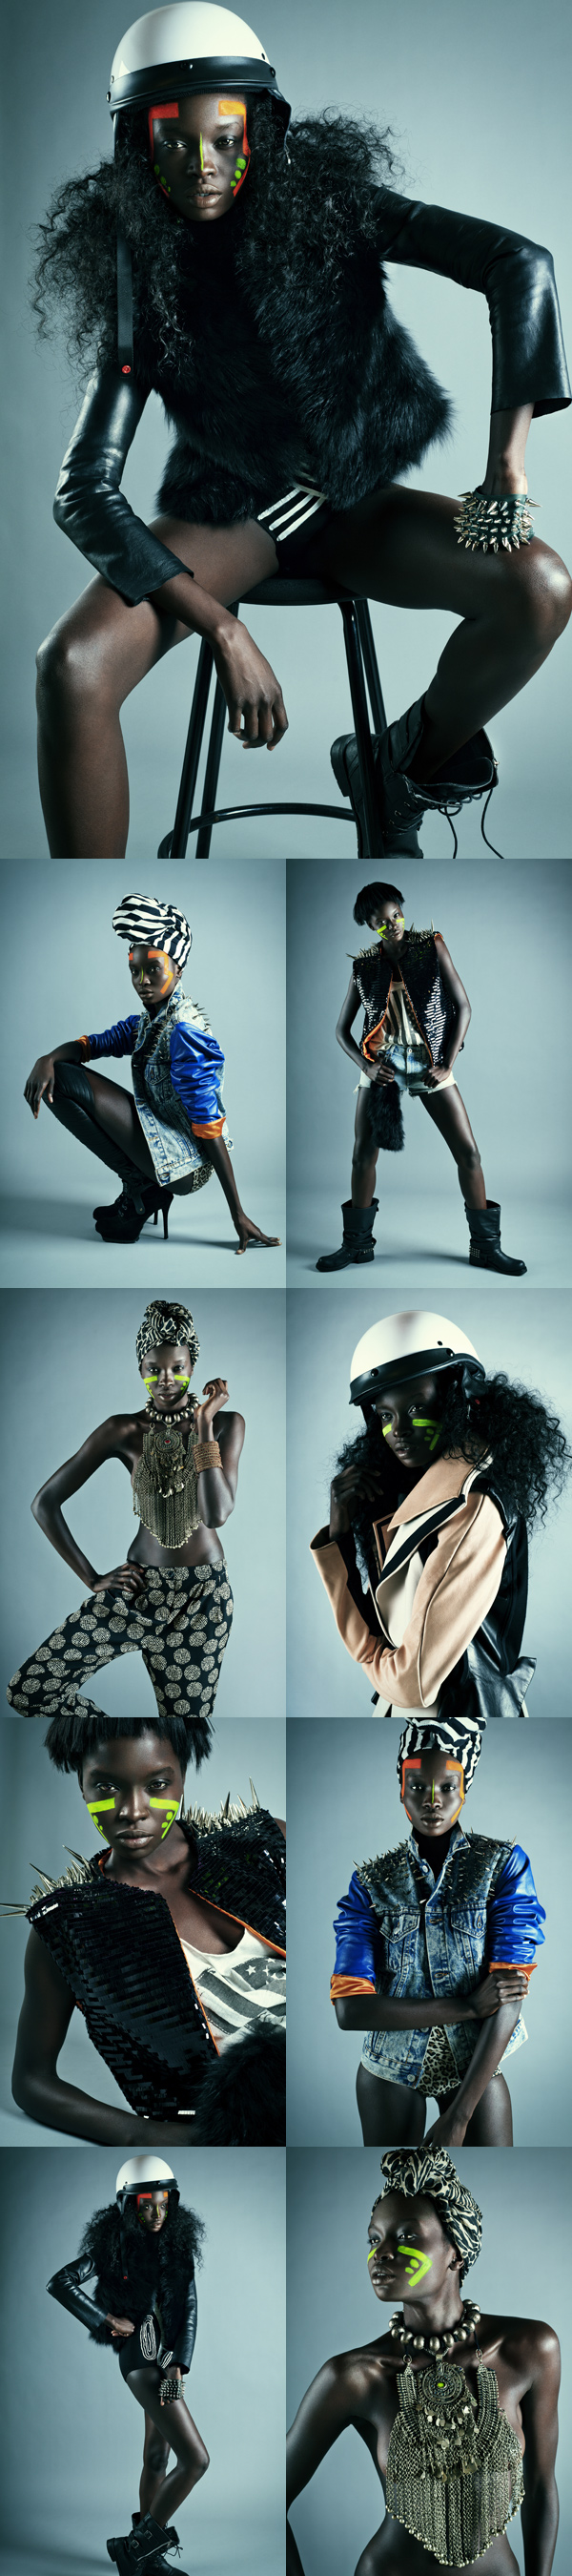 Styling by Melanie Archer Aug 21, 2012 Rebel